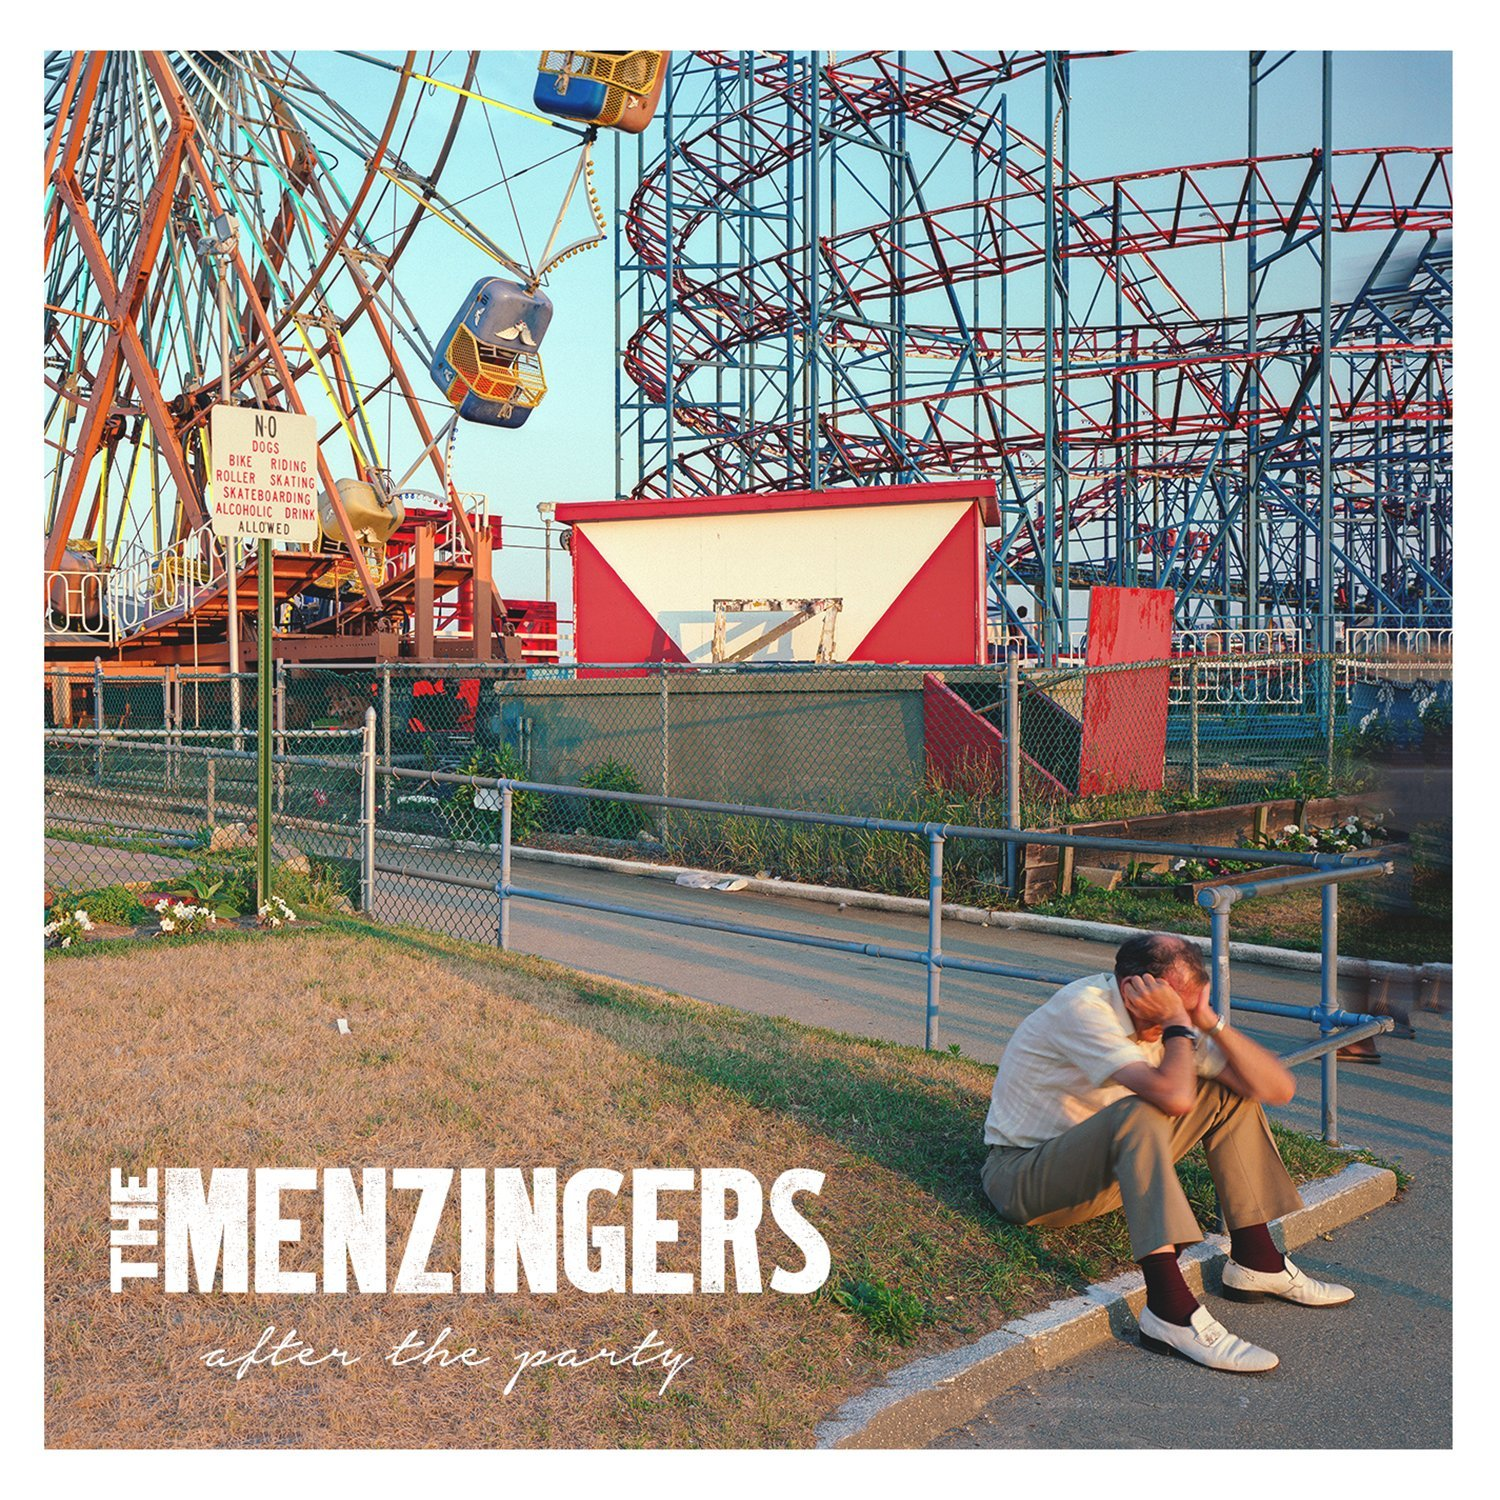 The Menzingers: After The Party [Album Review]